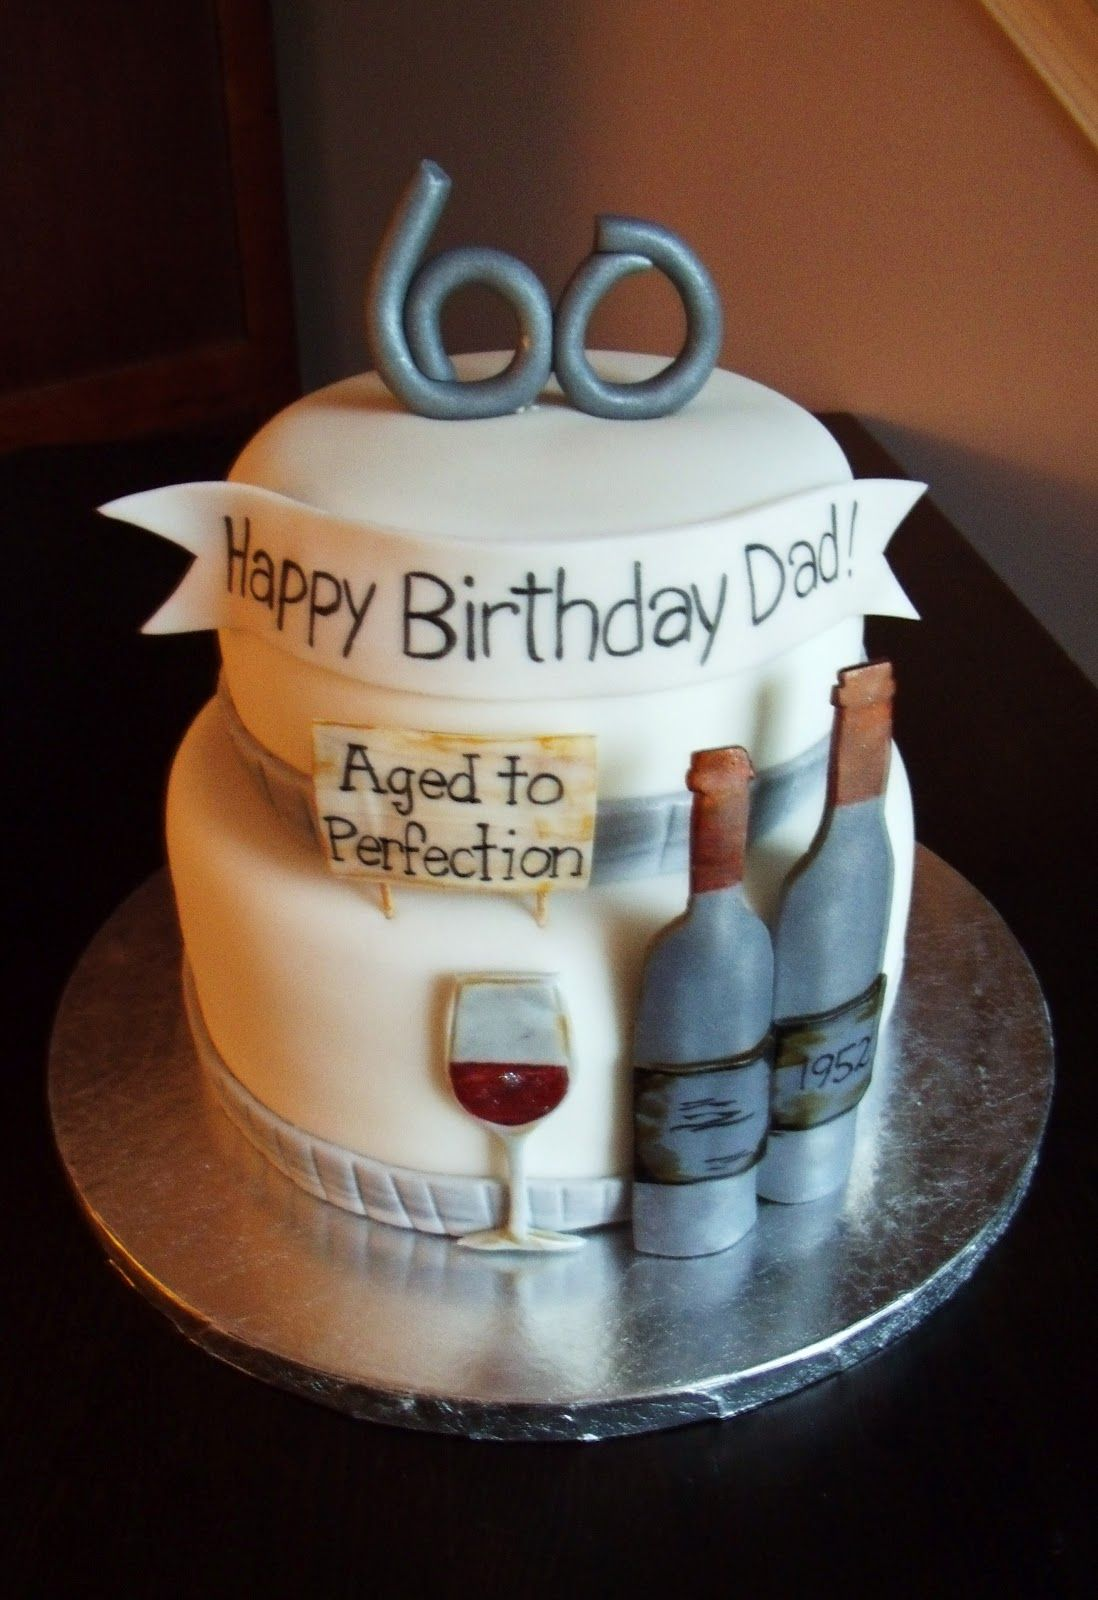 cake idea for new dad Posted by Linda Schwartz at